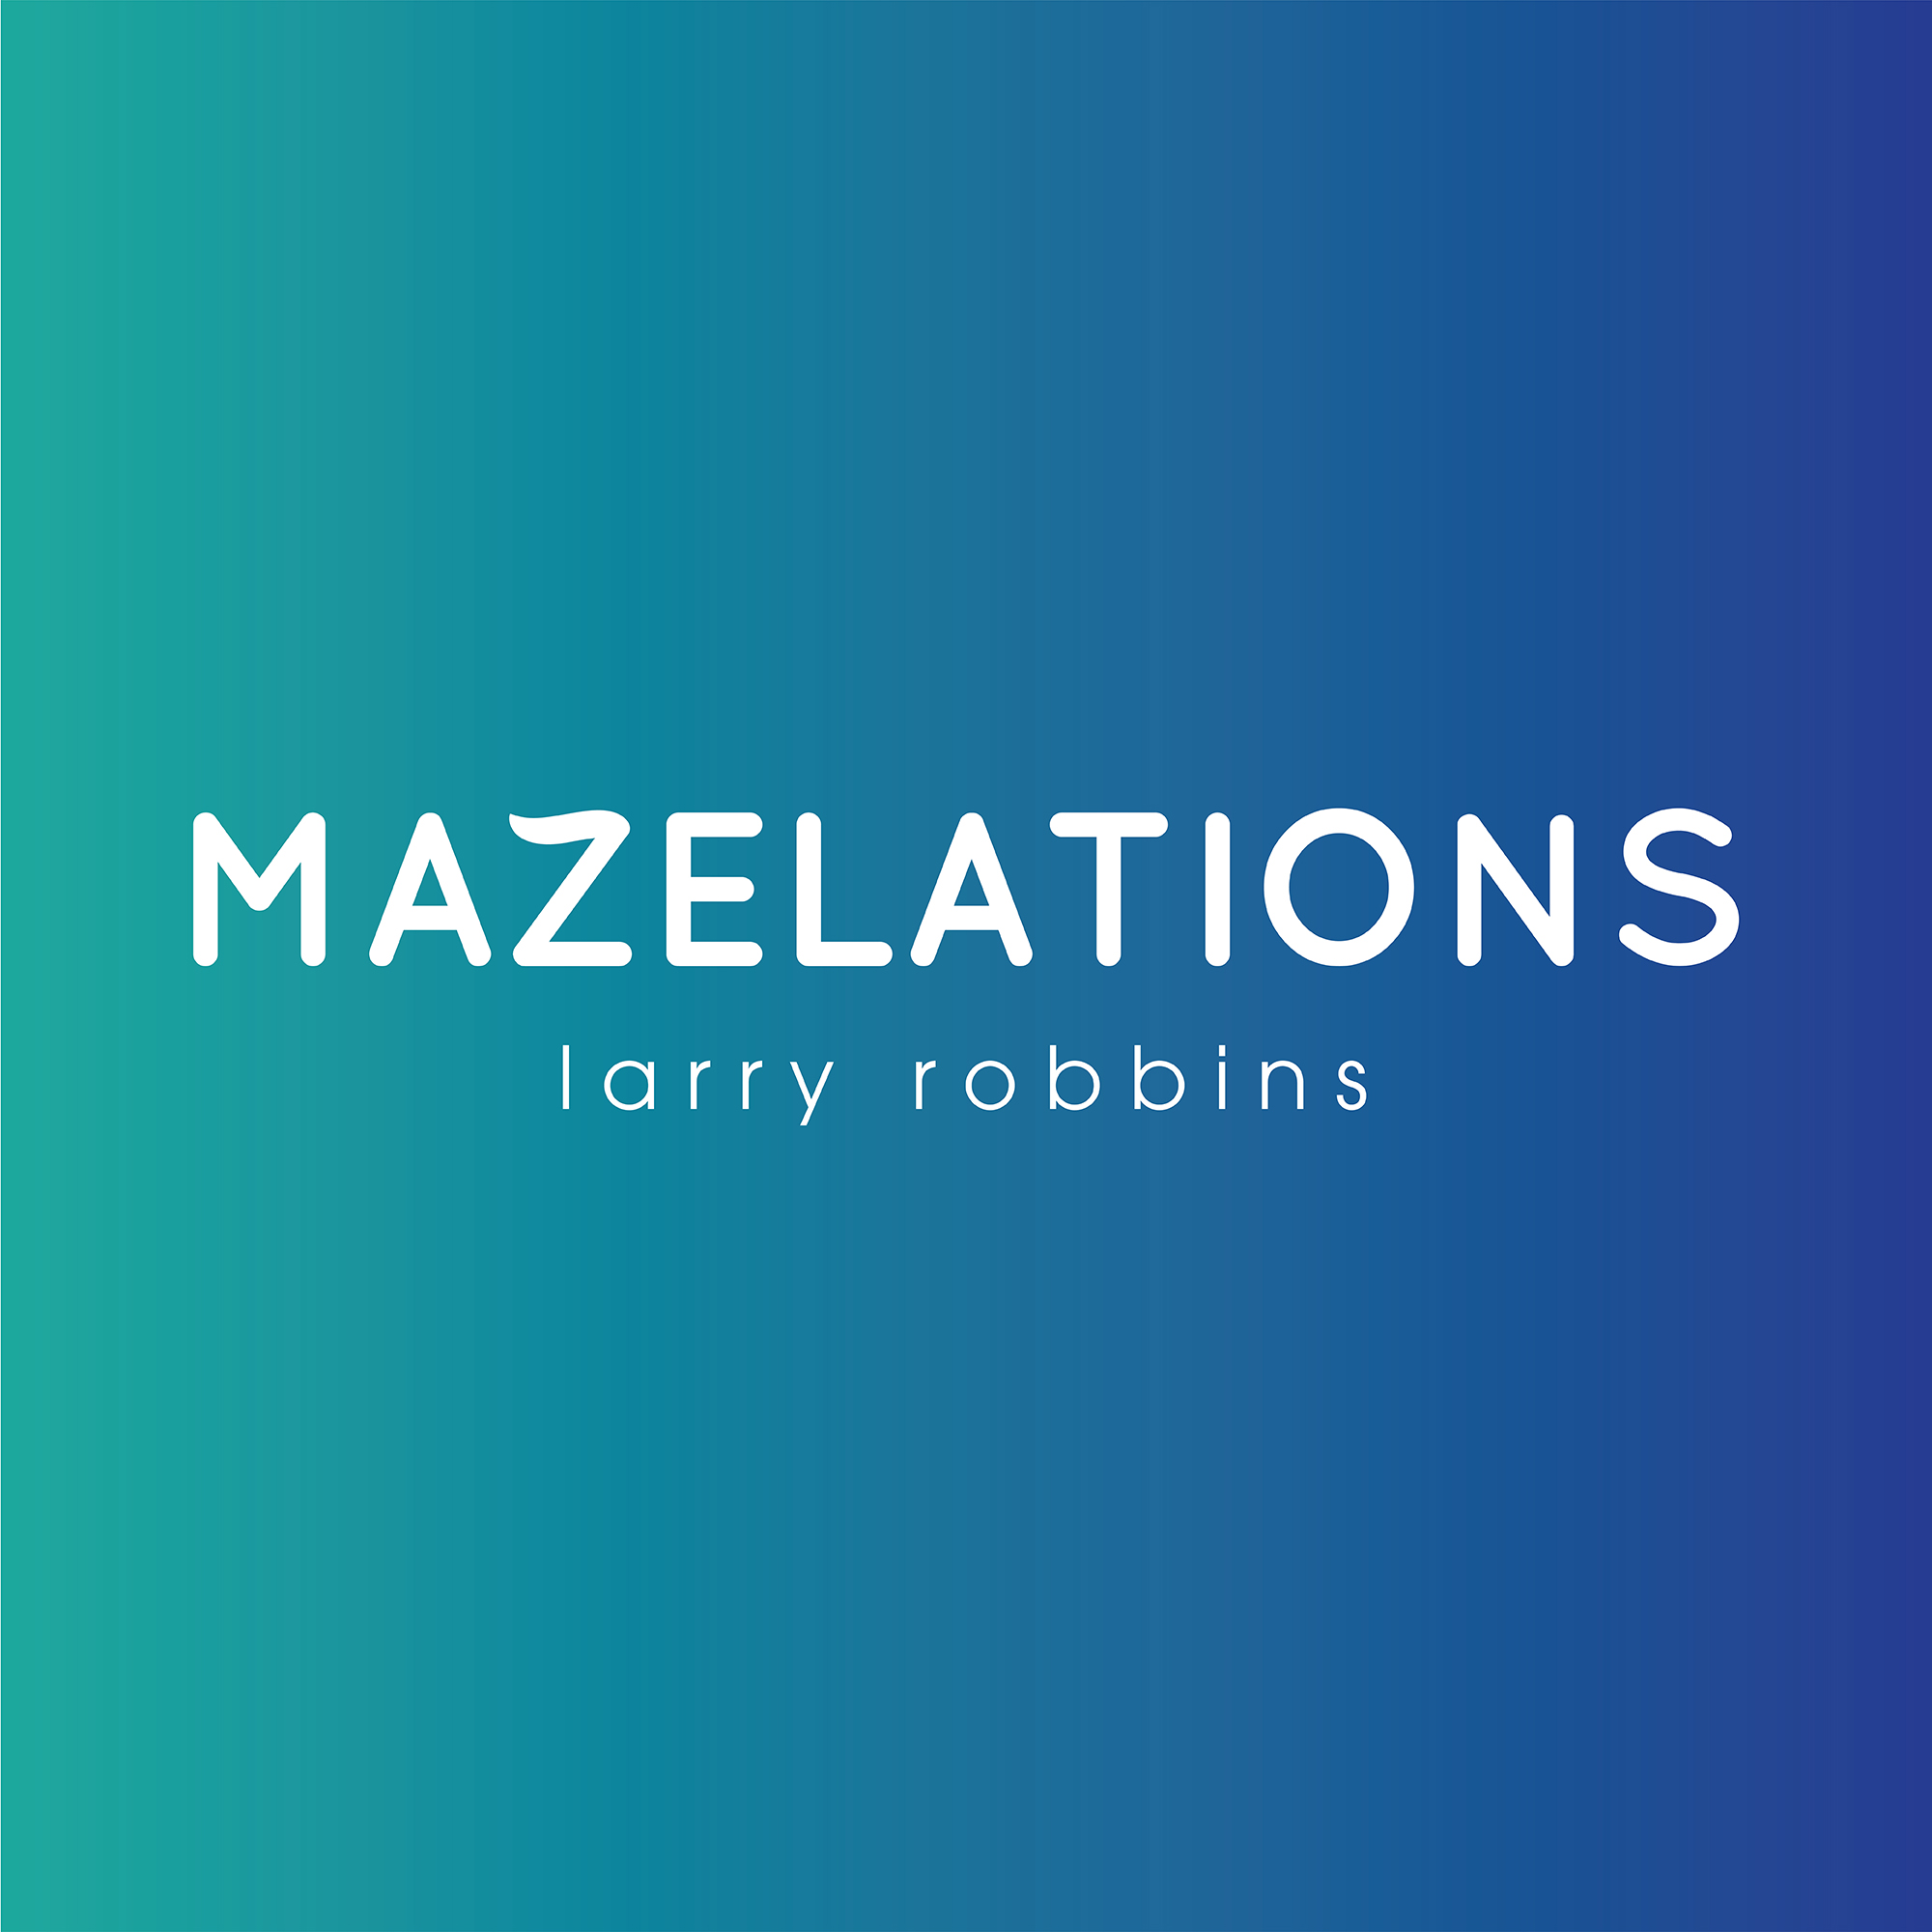 Mazelations